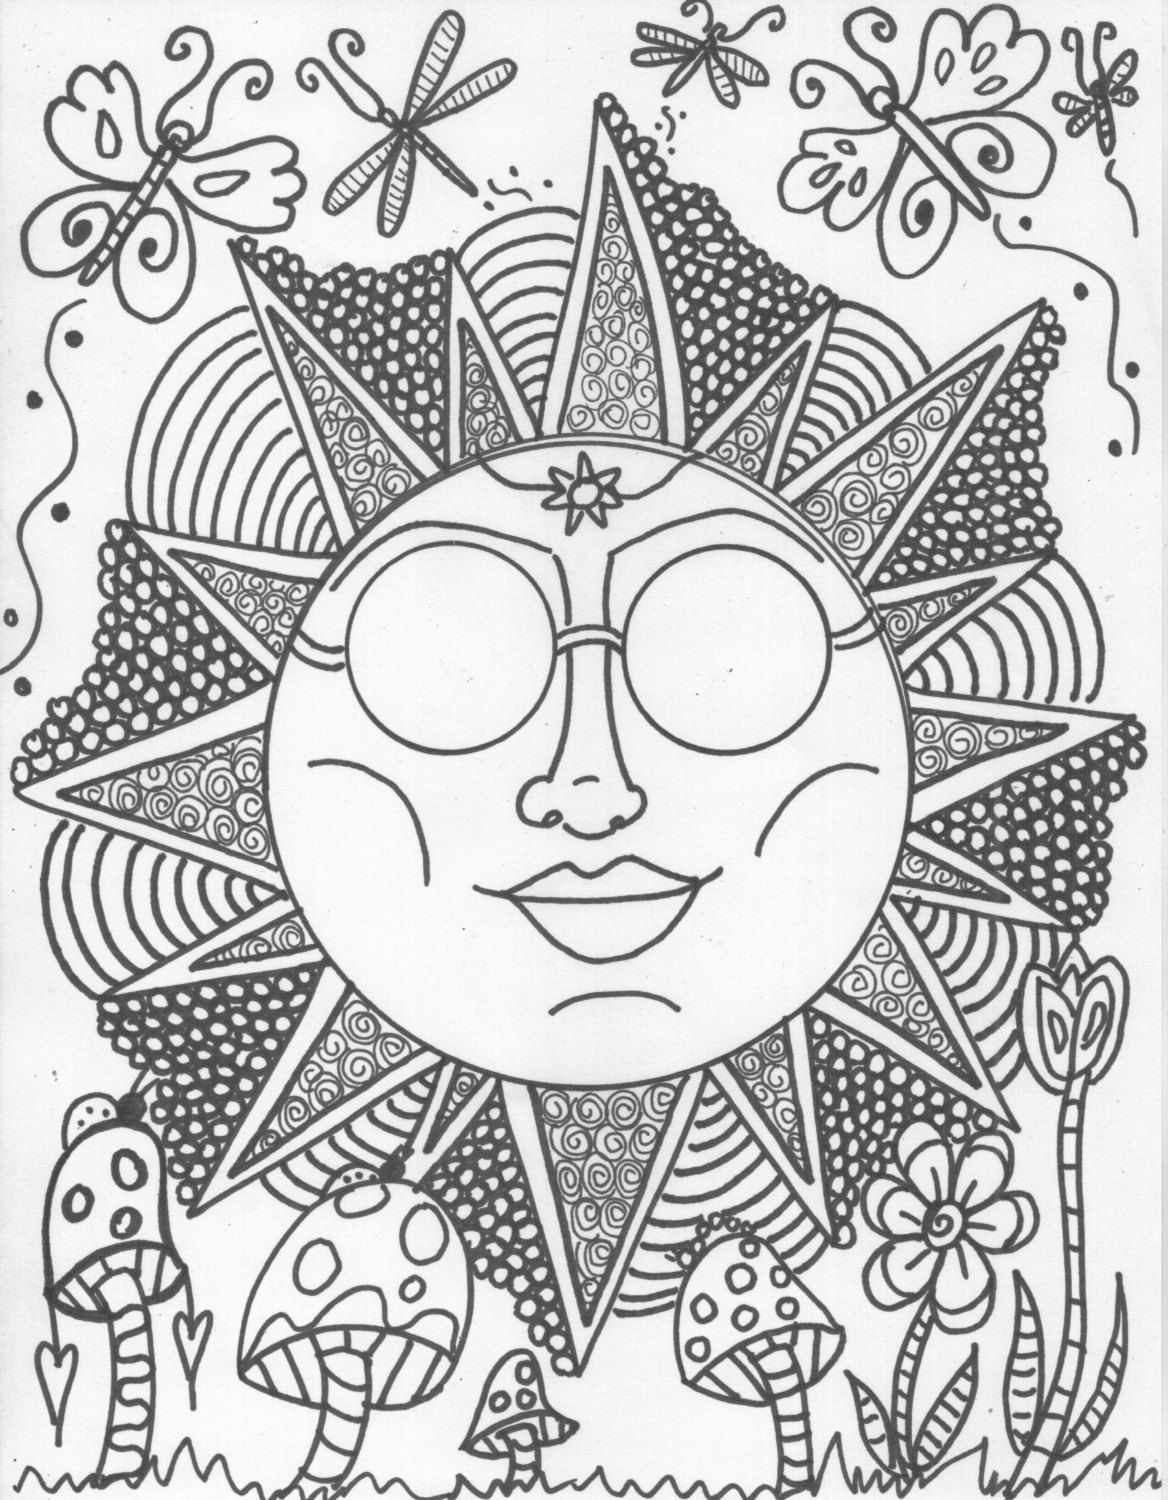 Cartoon Hippie Coloring Pages - Coloring Pages For All Ages